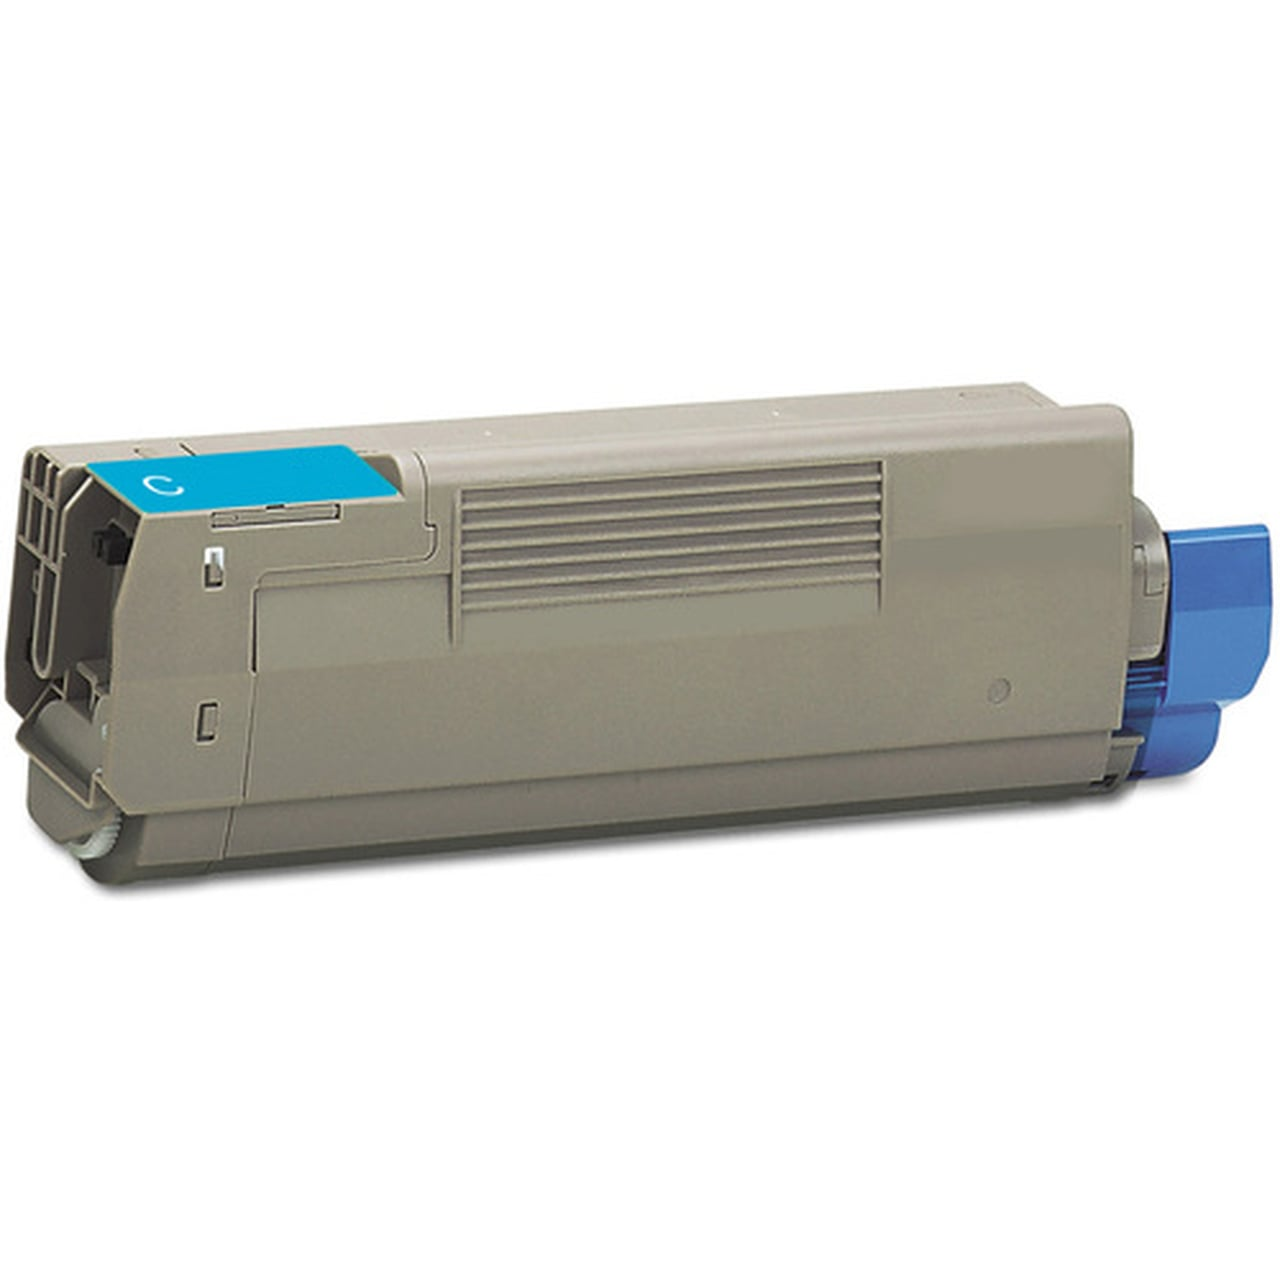 46507603 Toner Cartridge - Okidata Compatible (Cyan)